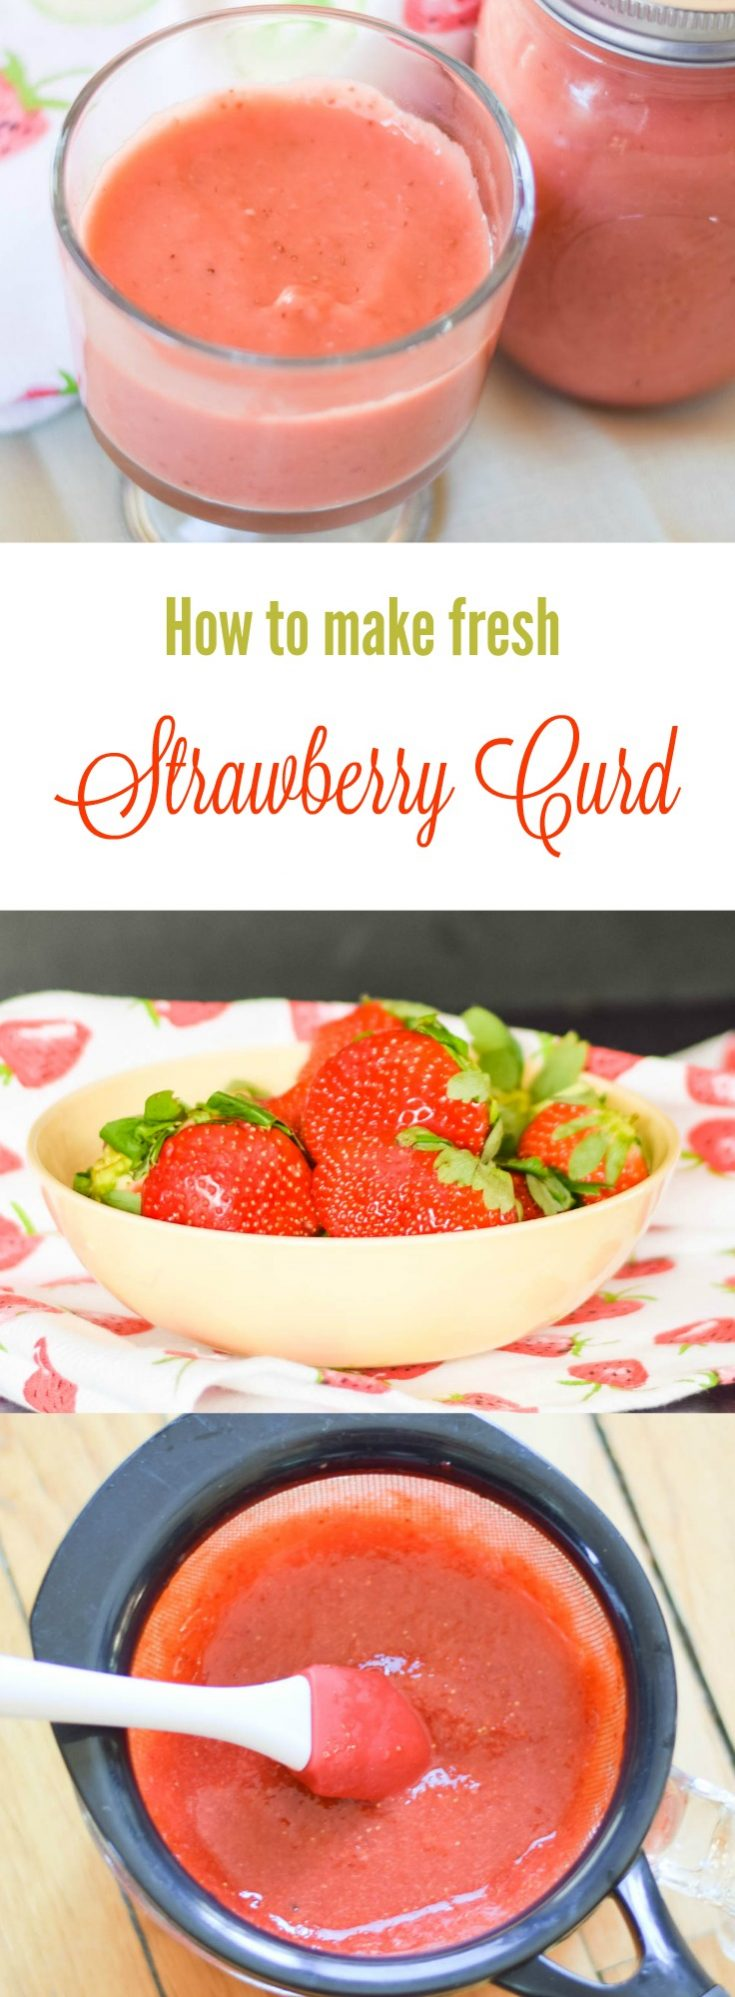 Homemade Strawberry Curd #strawberries #strawberrycurd #strawberryrecipe